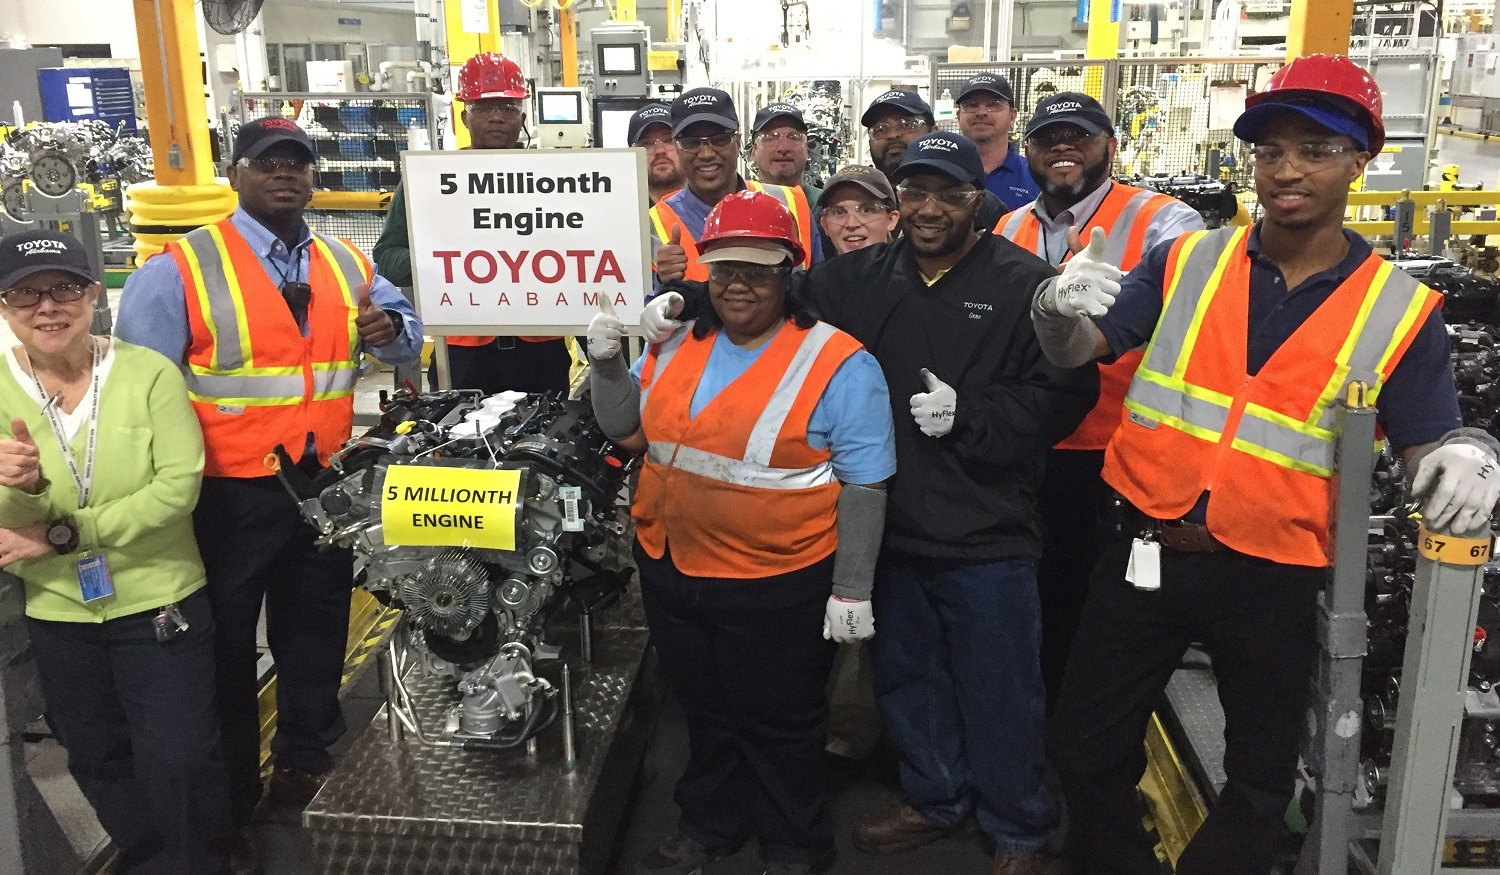 Good Employees At Toyota Motor Manufacturing Alabama In Huntsville Celebrate The  5 Millionth Engine Produced At The